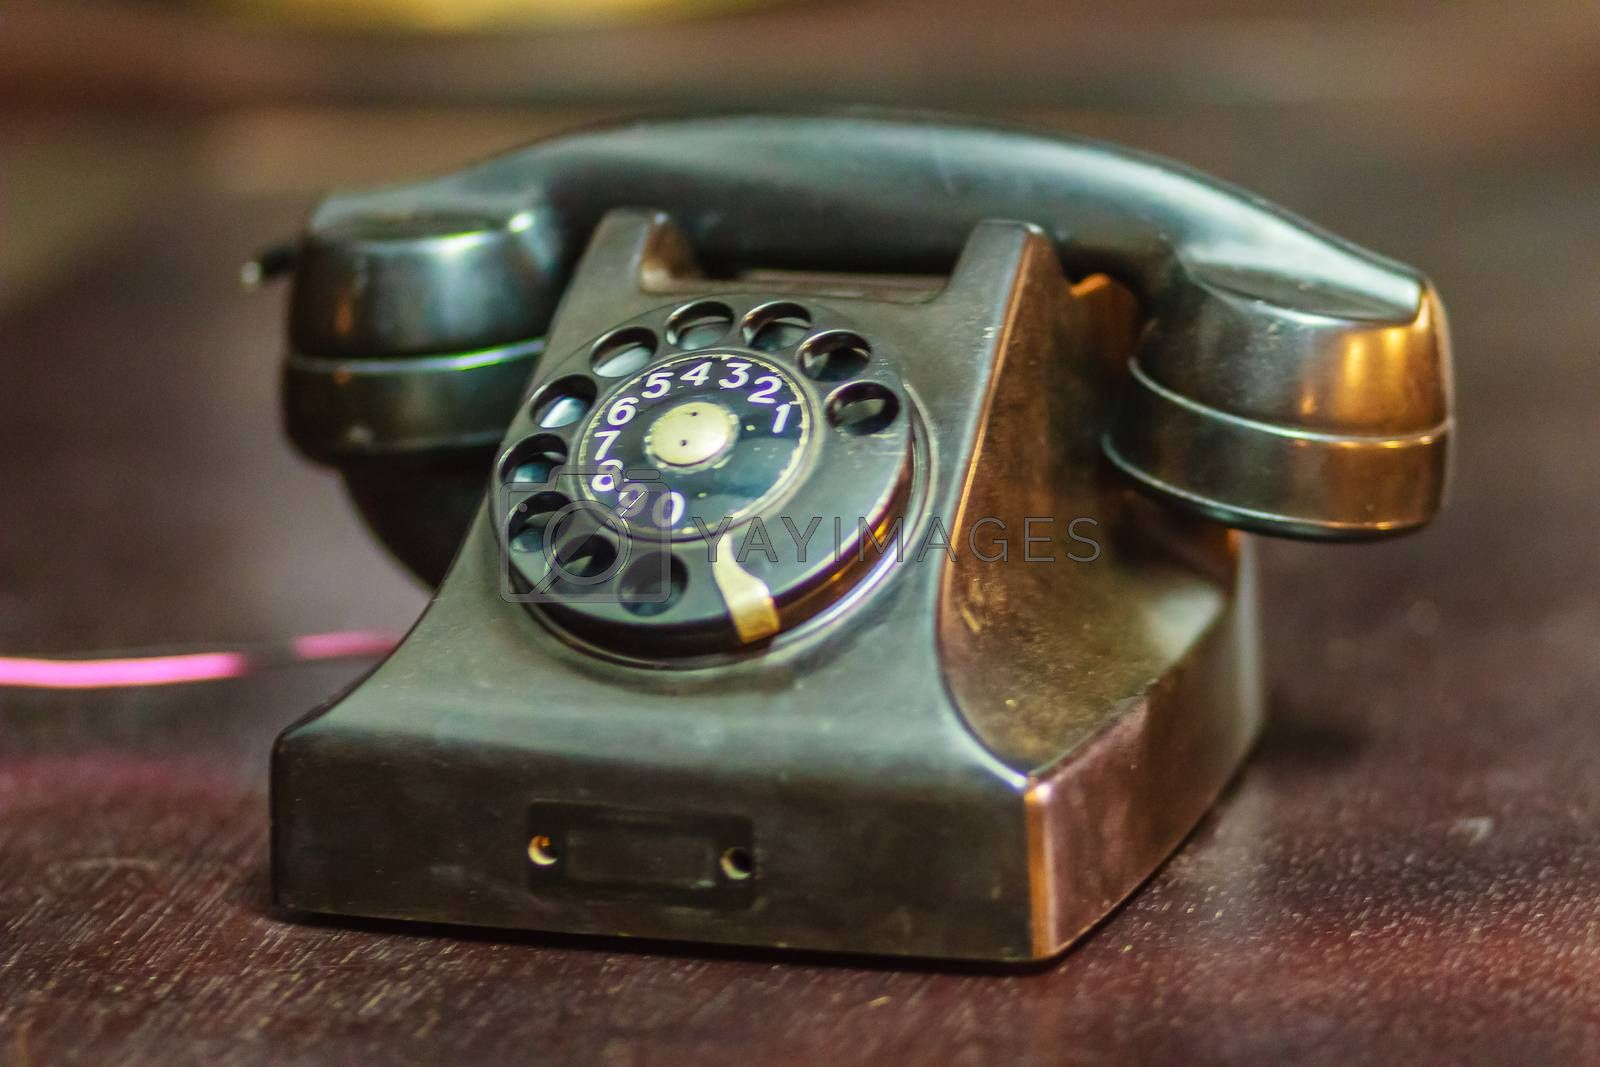 Royalty free image of Vintage old rotary telephone. Antique rotary telephone collectio by kwhisky